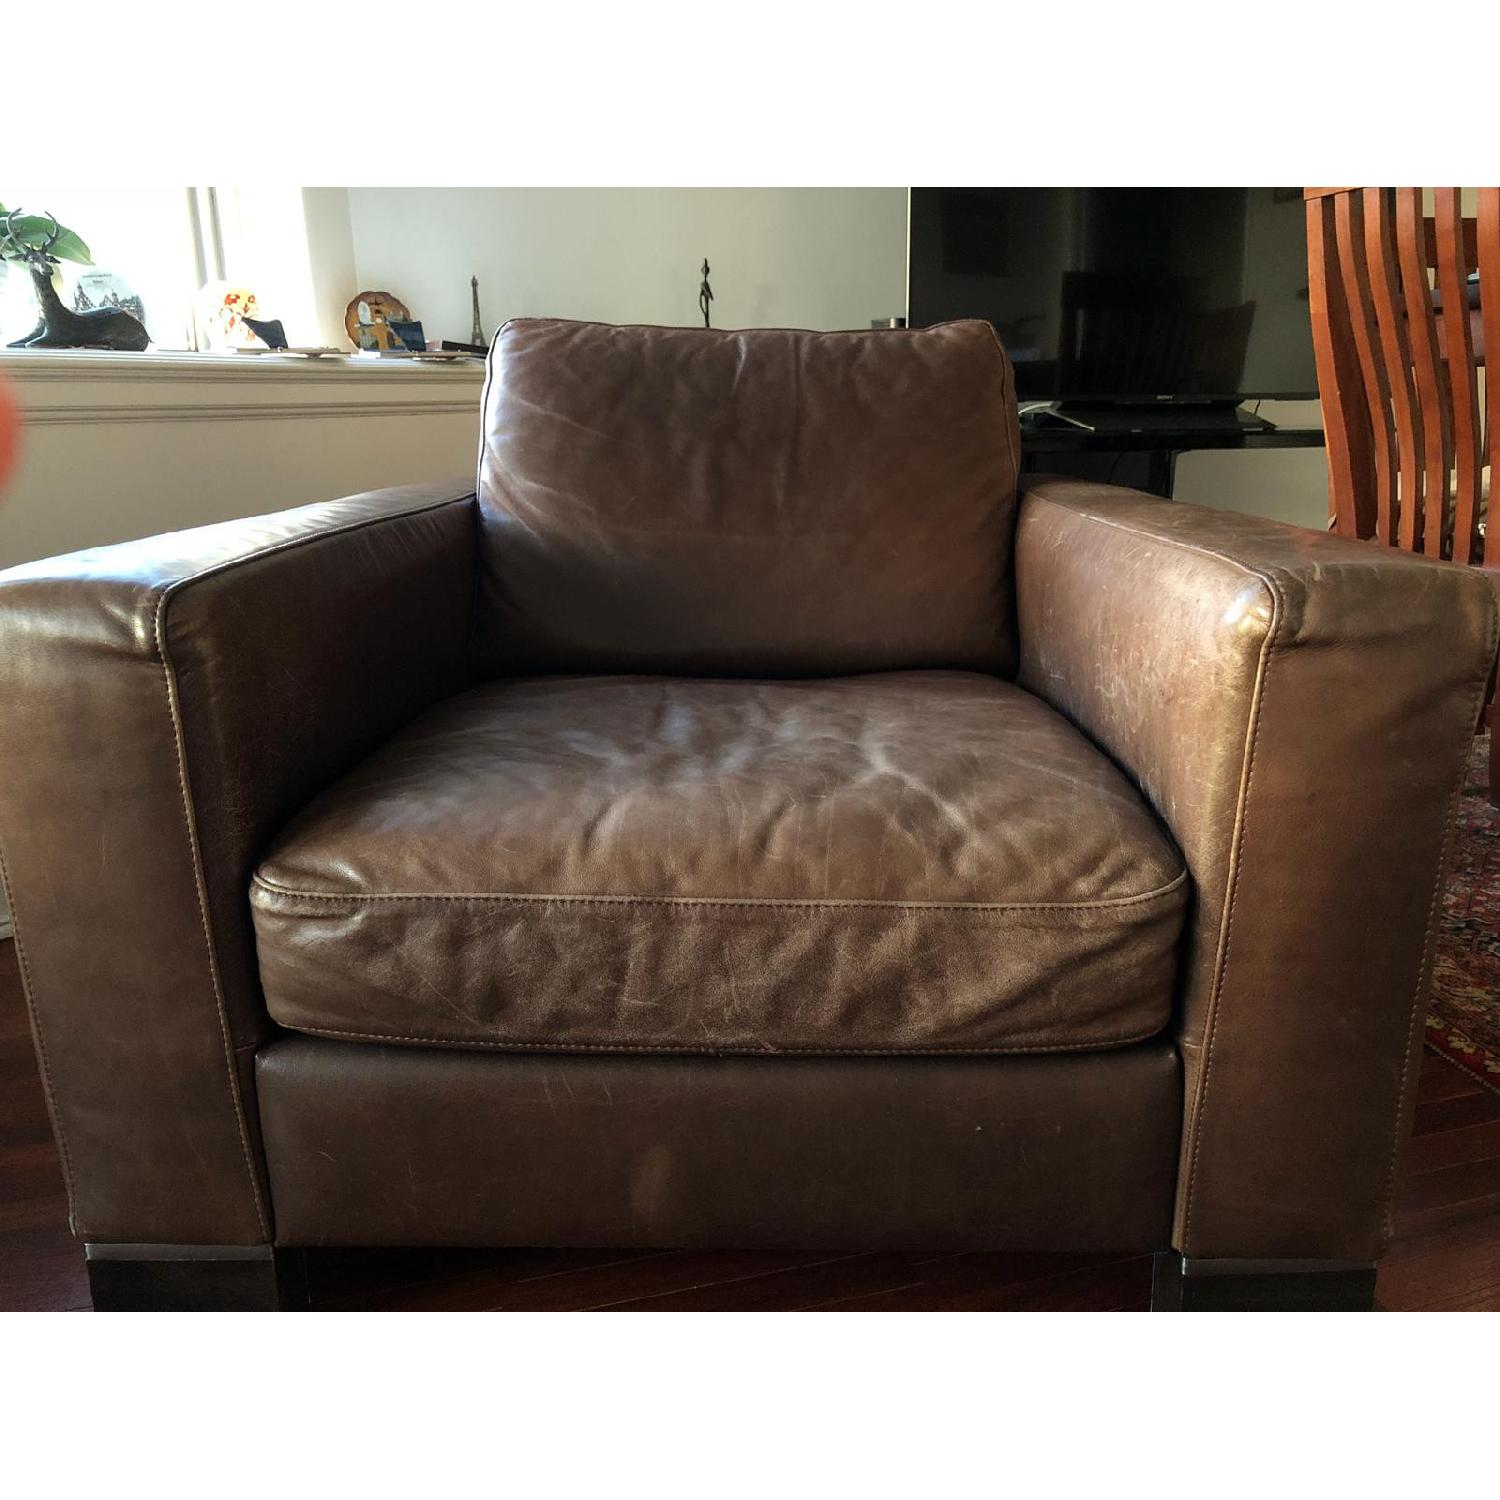 Bloomingdale's Brown Leather Chair - image-2